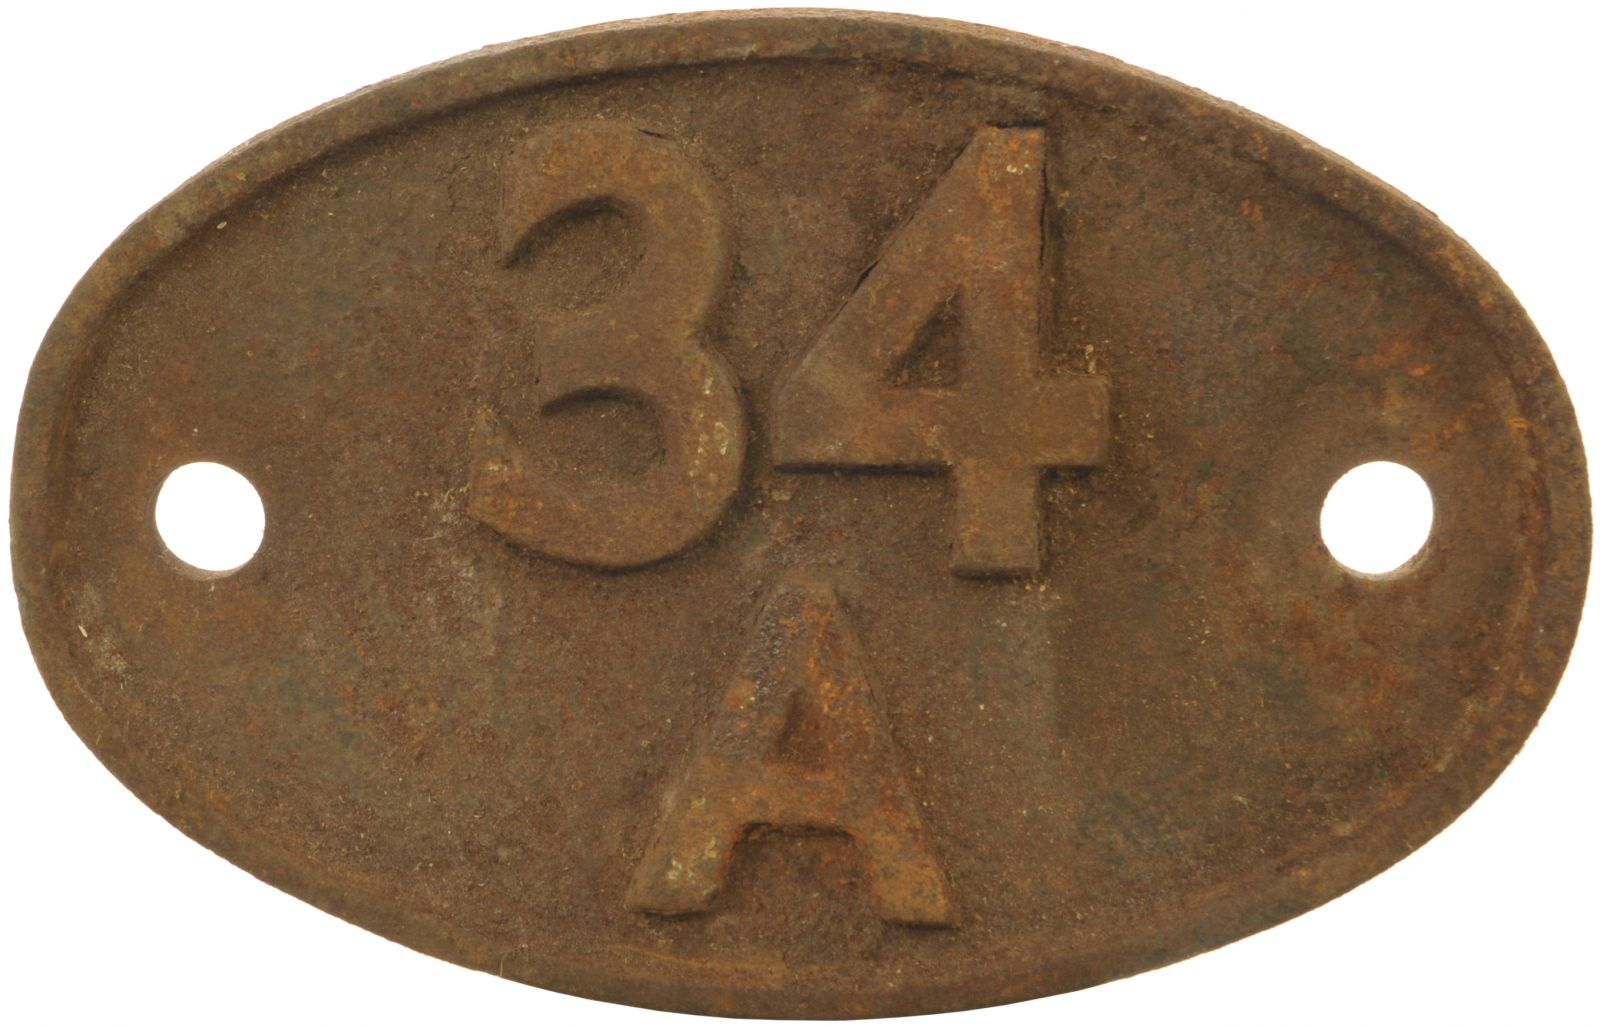 Lot 38 - Railway Locomotive Shedplates, 34A: A shedplate 34A Kings Cross (1948 to June 1963). Top shed was